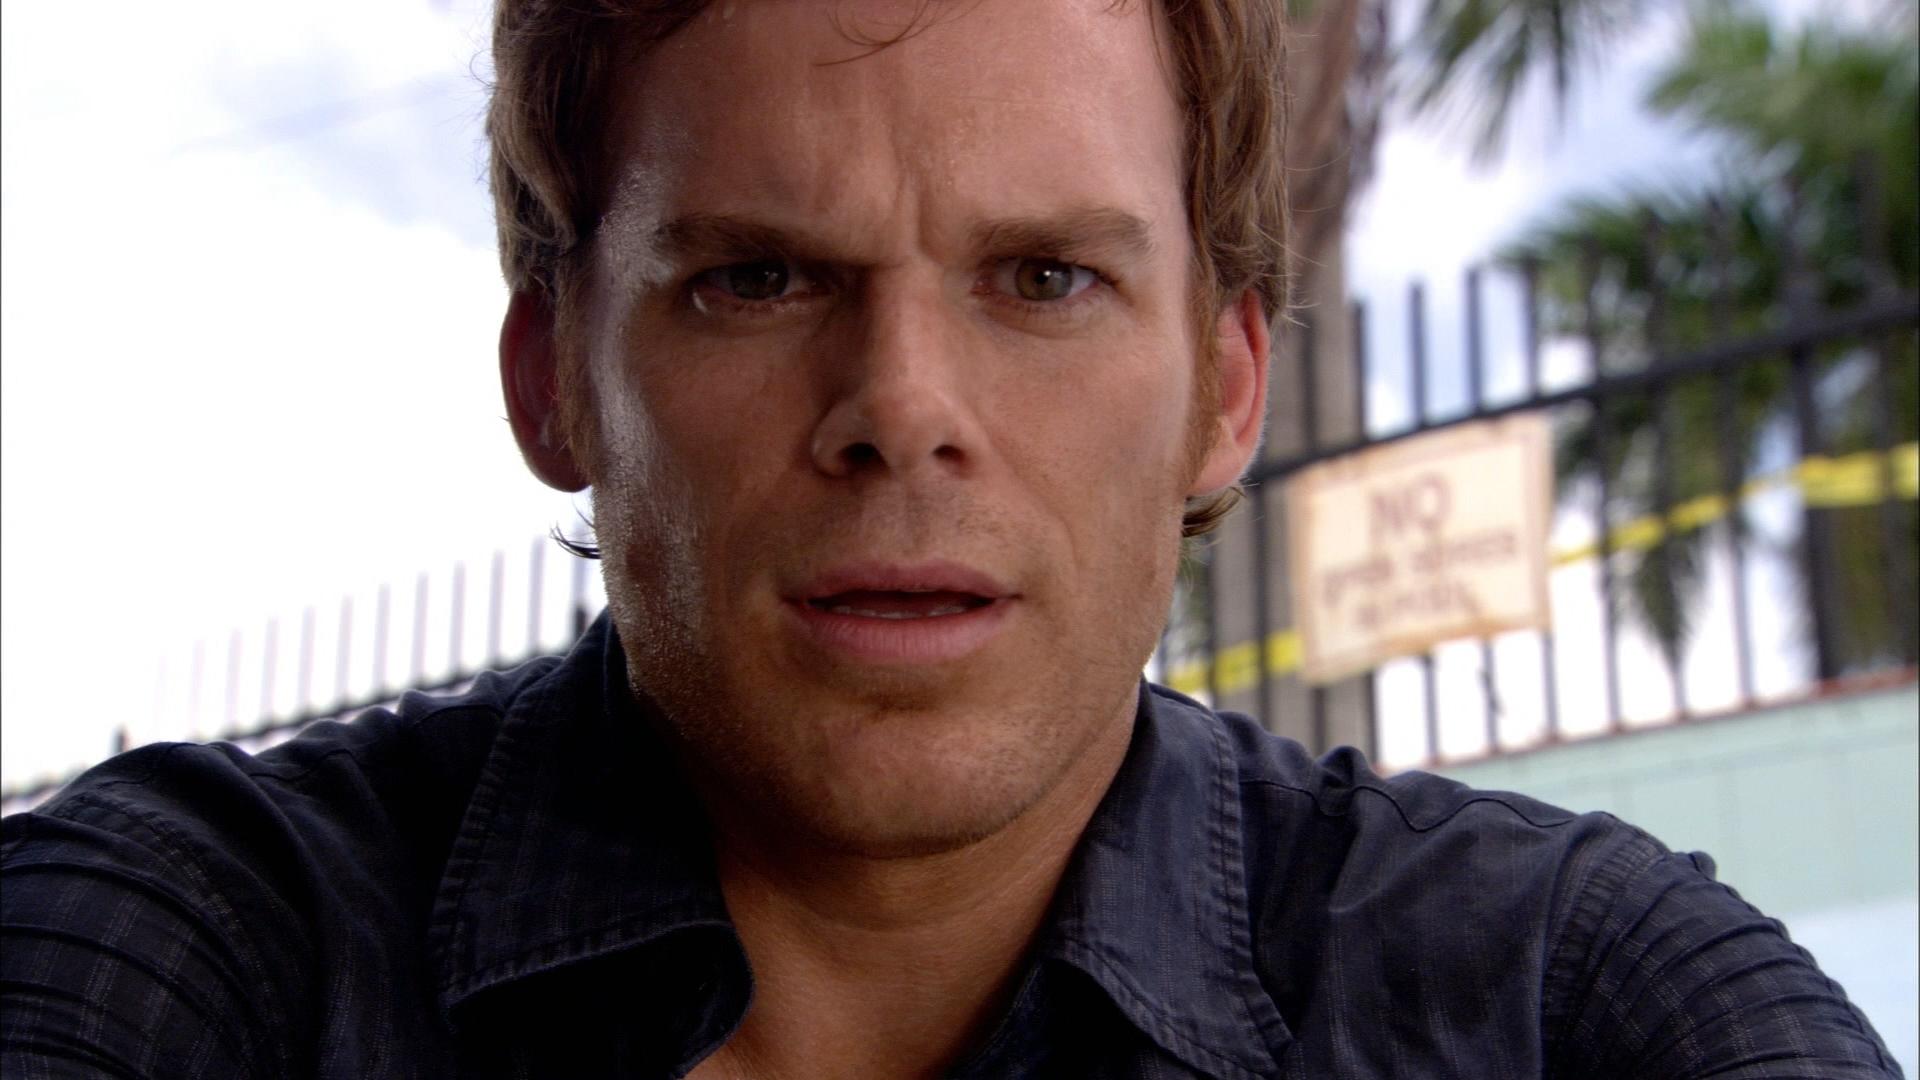 Screen-Shot-1-Dexter-dexter-7292657-1920-1080.jpg